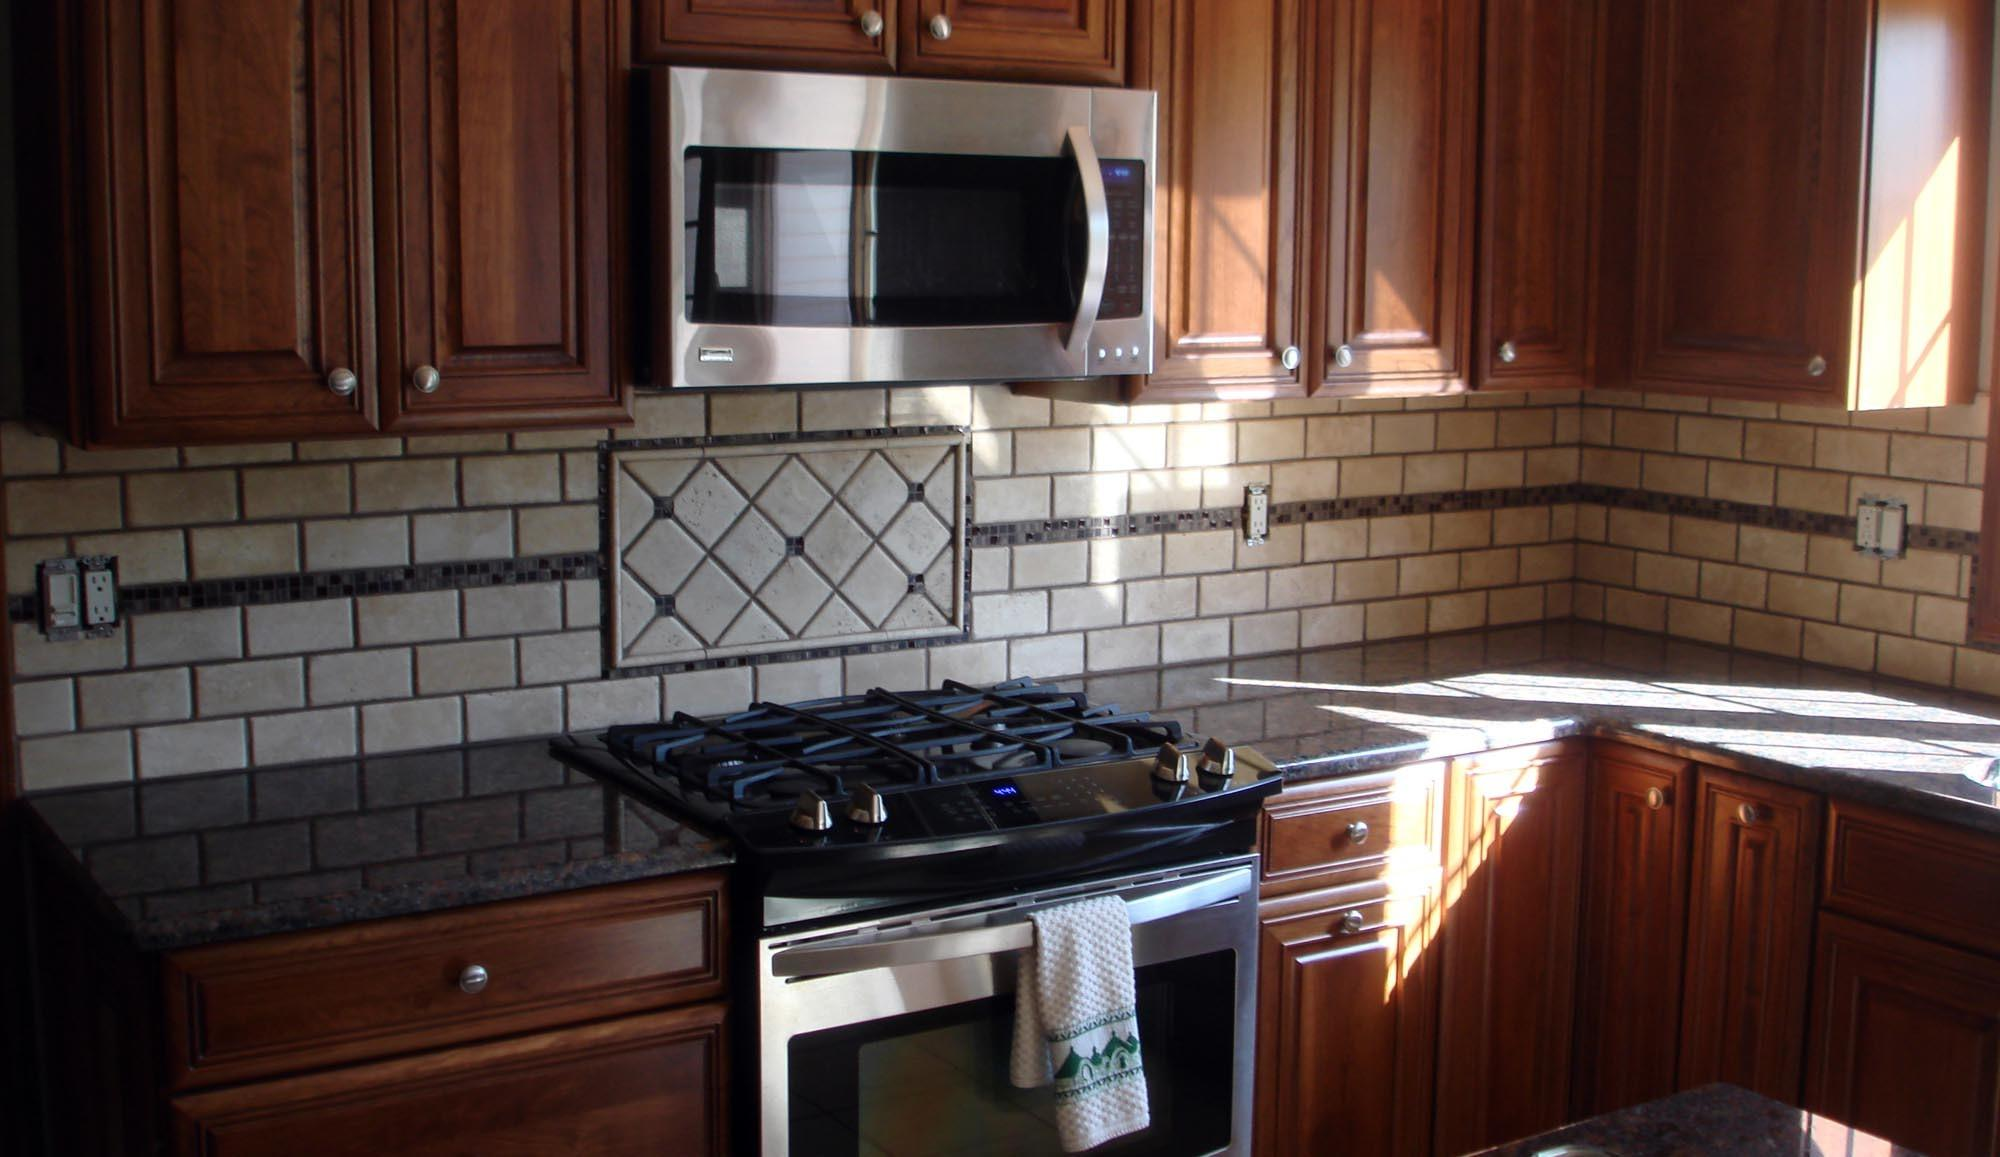 Glass Mosaic Tile Backsplash Kyprisnews